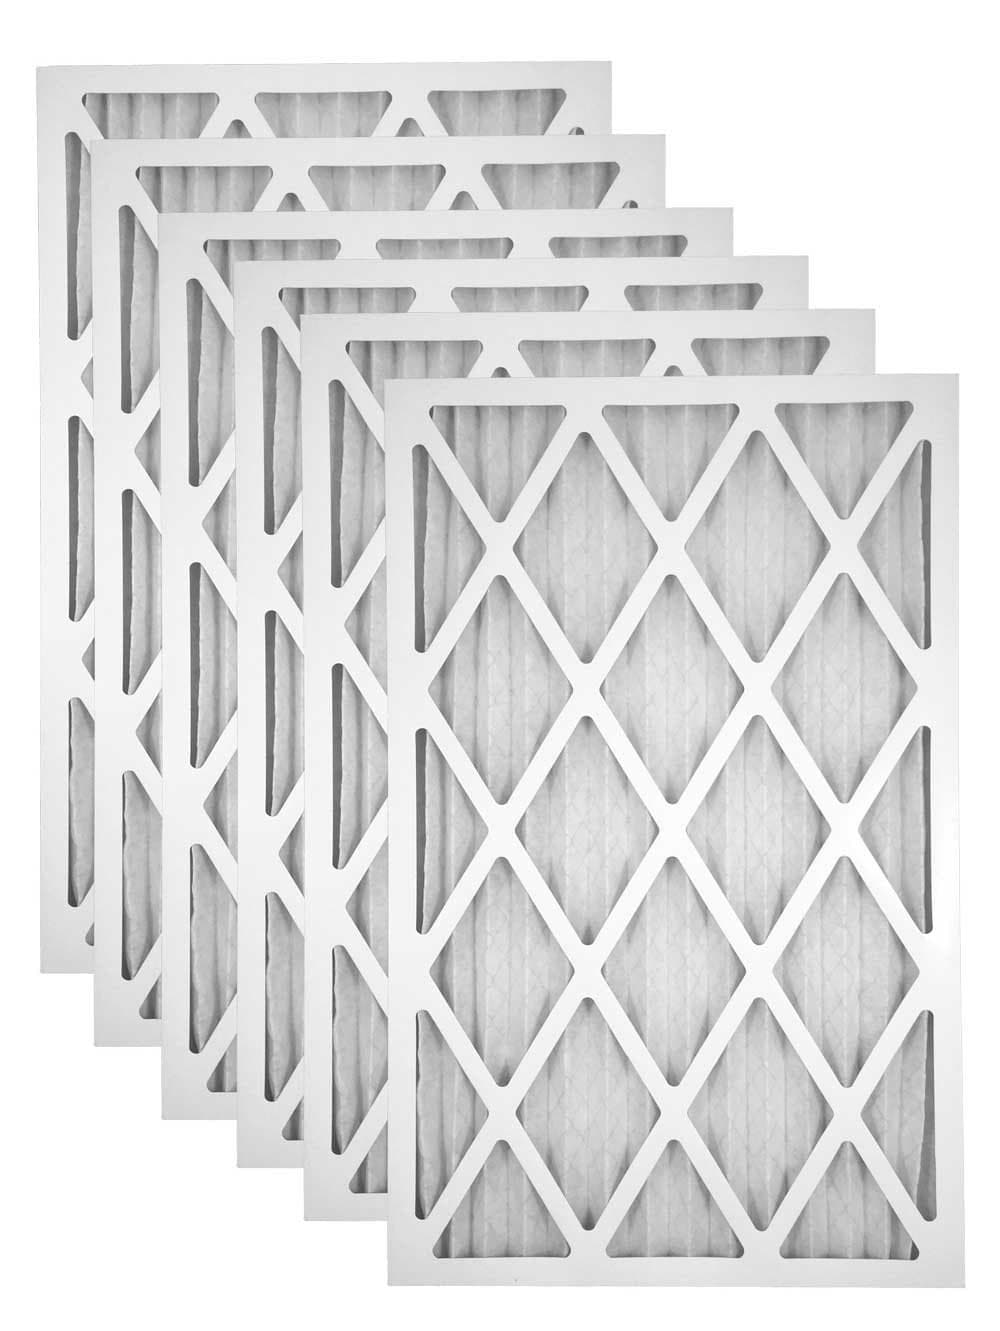 12x20x1 Merv 8 AC Furnace Filter - Case of 6